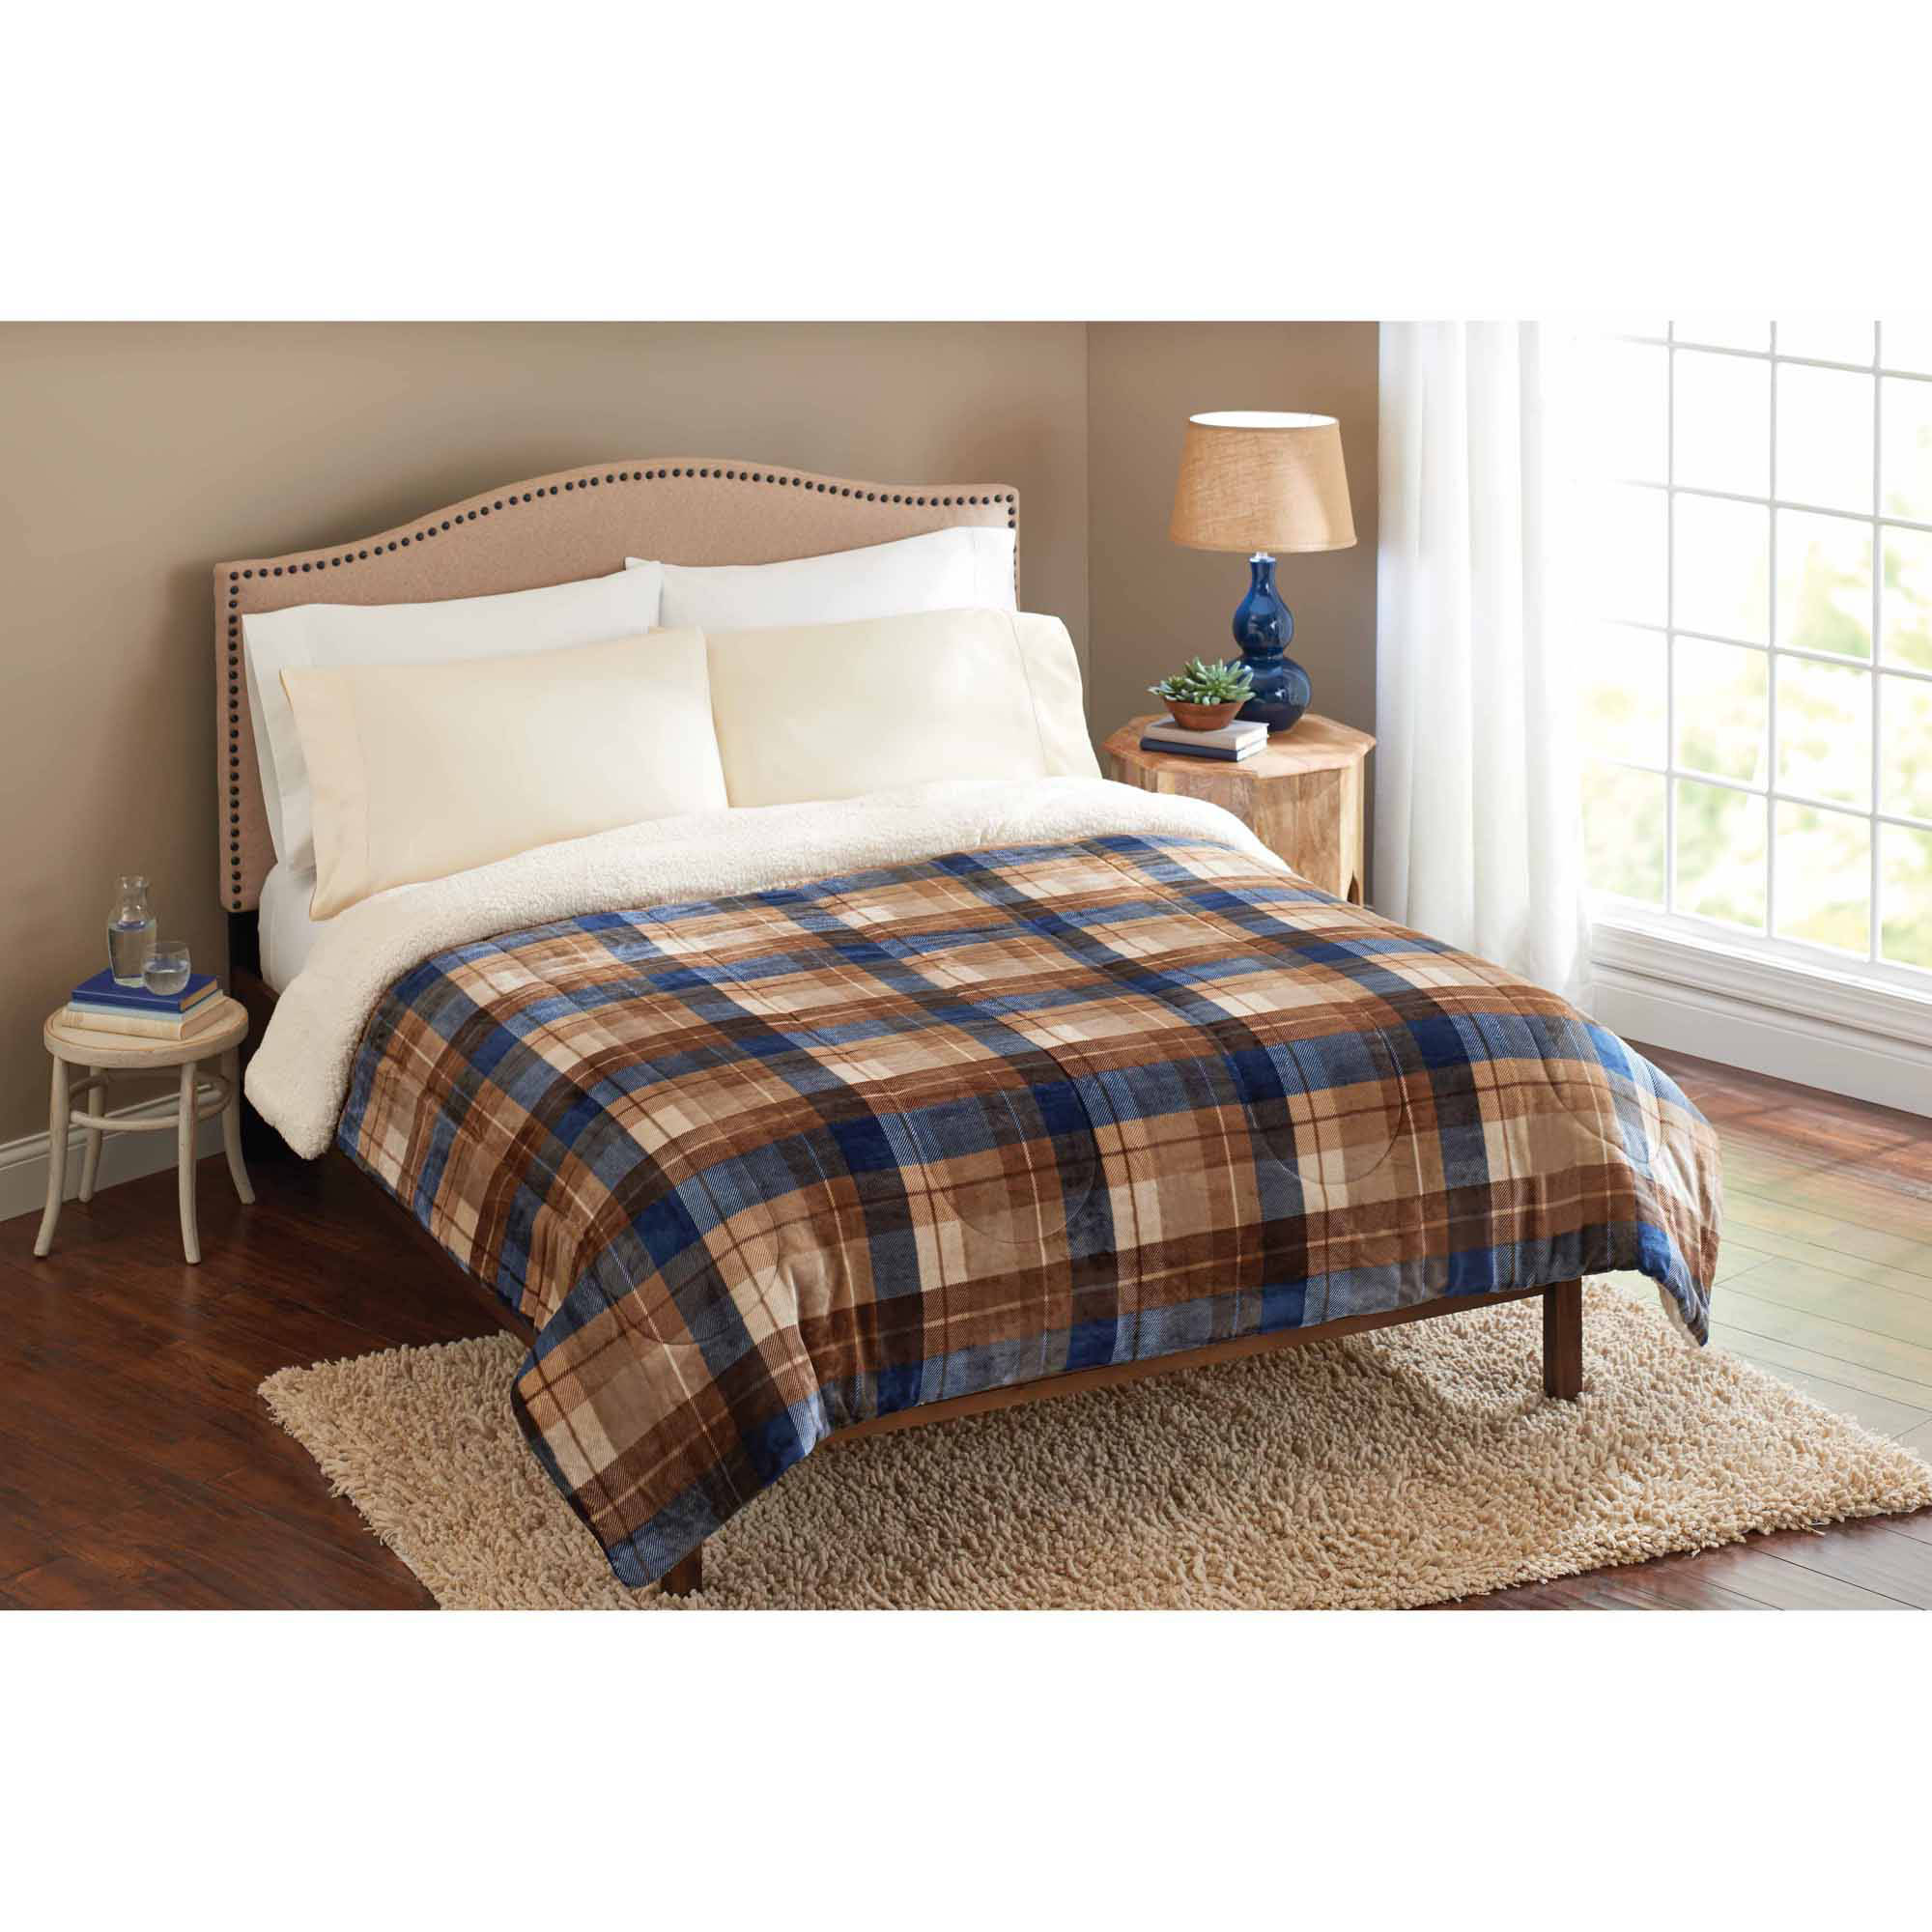 Better Homes and Gardens Velvet Plush Reverse to Sherpa Bedding Comforter